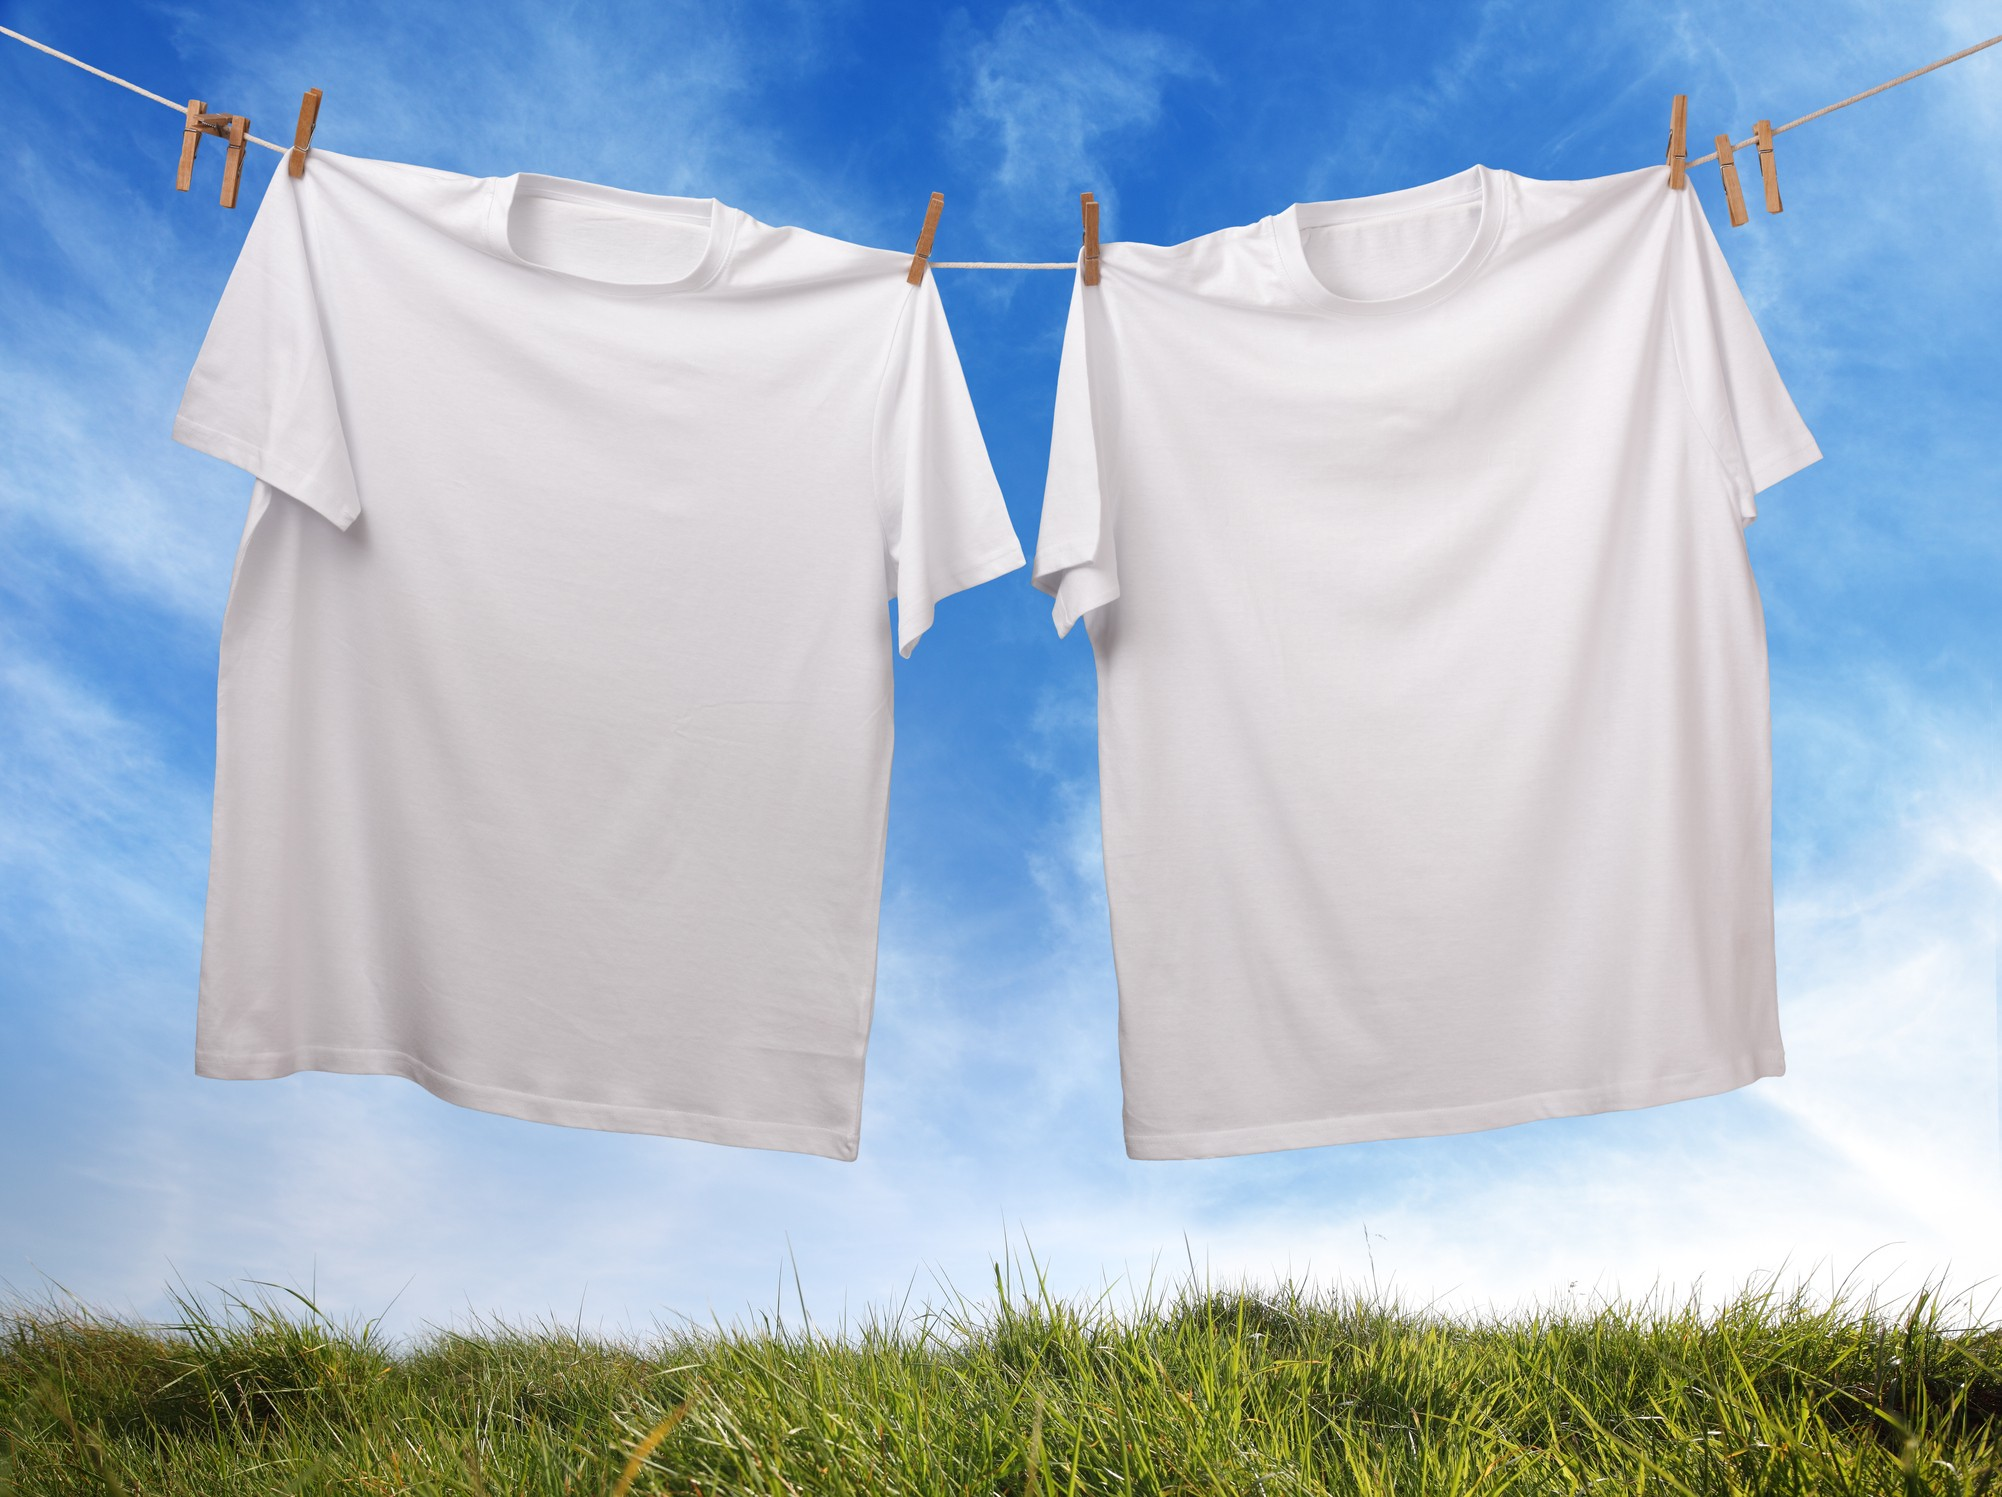 These Easy Tips Will Keep Your White Shirts White Not Yellow